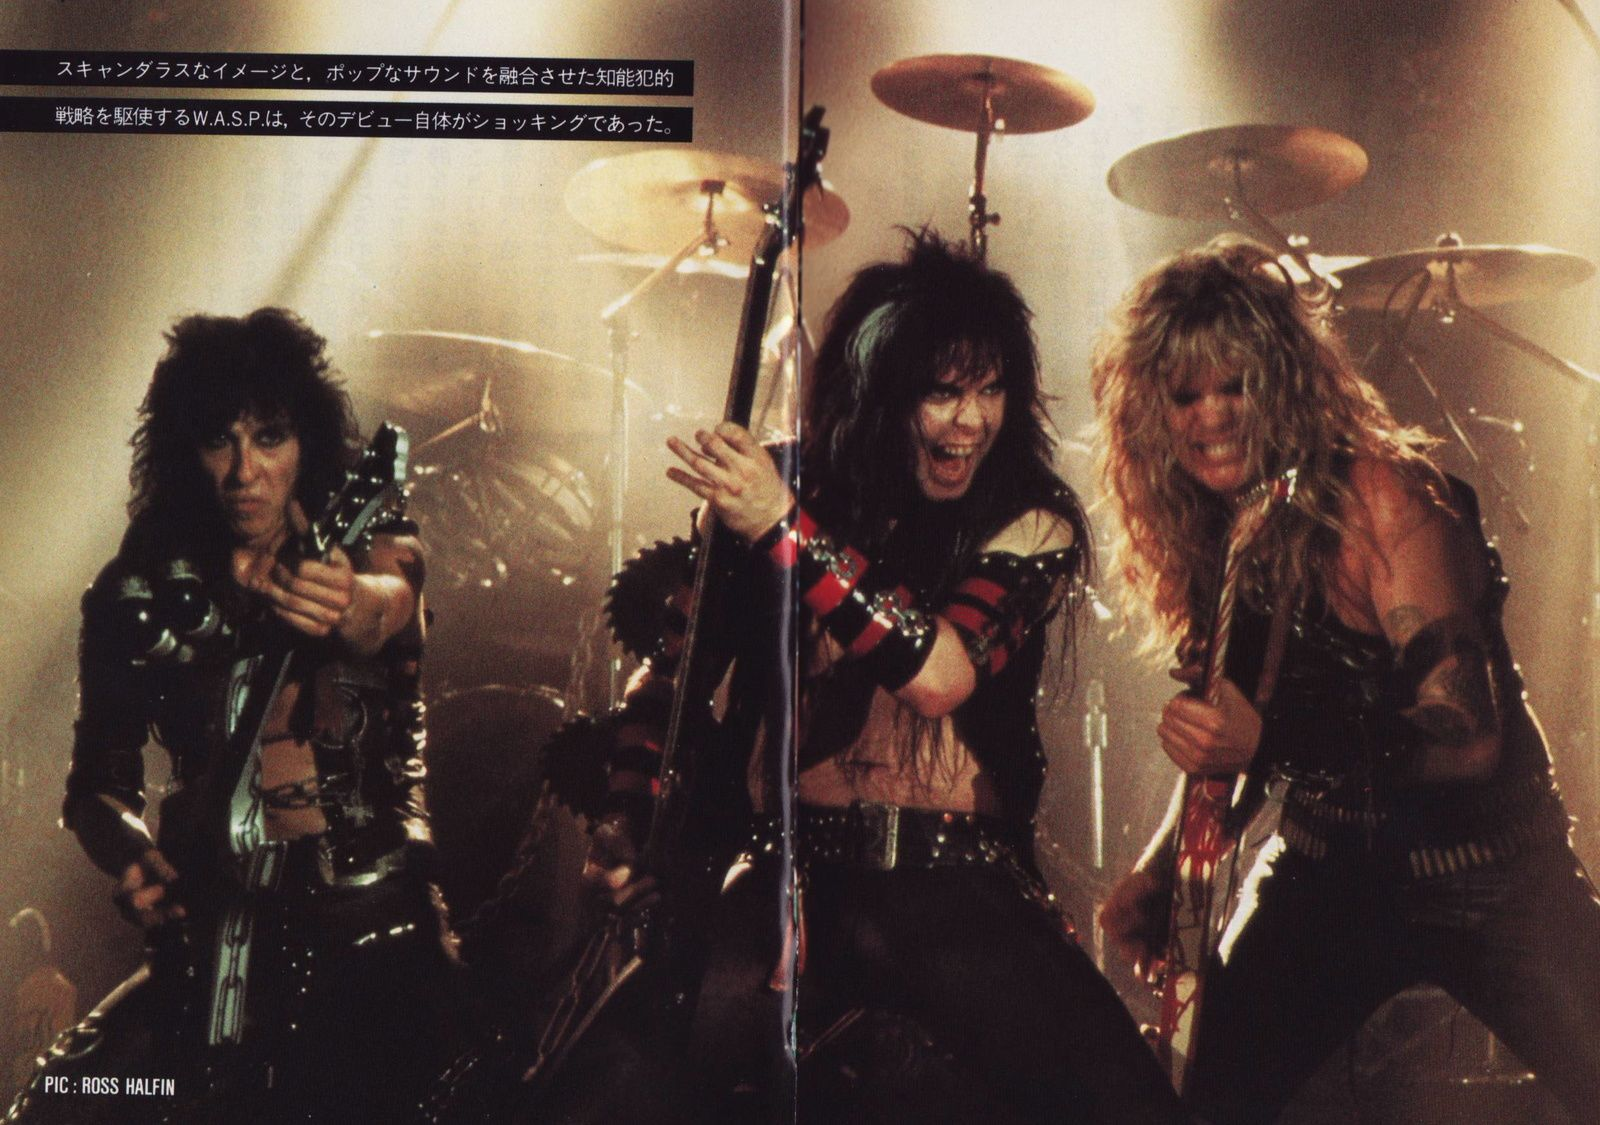 Randy Piper, Blackie Lawless and Chris Holmes (W.A.S.P.)